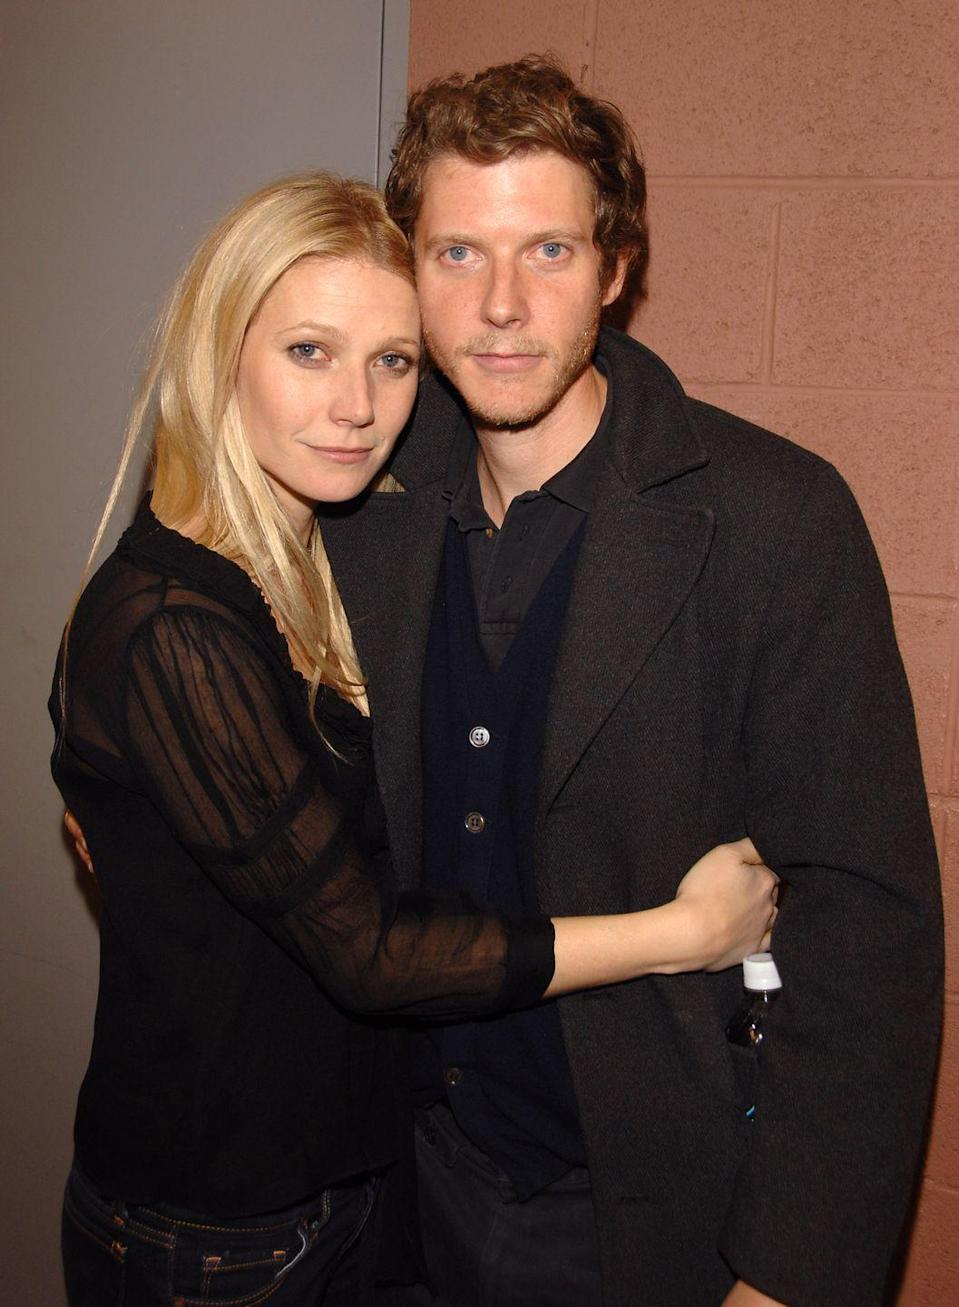 <p>Gwyneth and Jake Paltrow share more than just a famous last name (their father was Hollywood director Bruce Paltrow and their mother is actress Blythe Danner). They both have oval-shaped faces and slender noses that make them look more like twins than just siblings. </p>